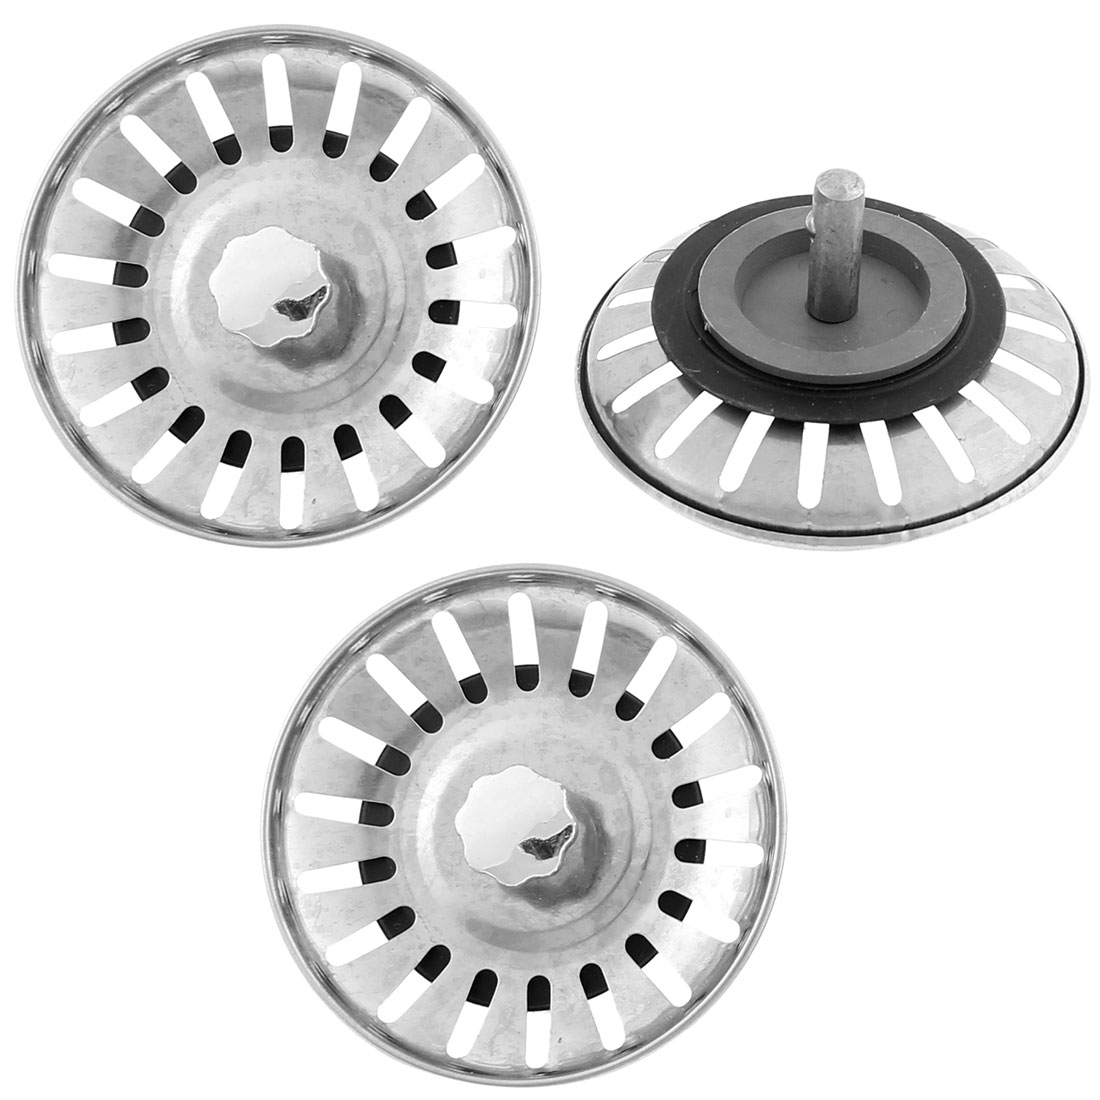 Household Stainless Steel Water Sink Drainer Strainer Filter 78mm Dia 3 Pcs